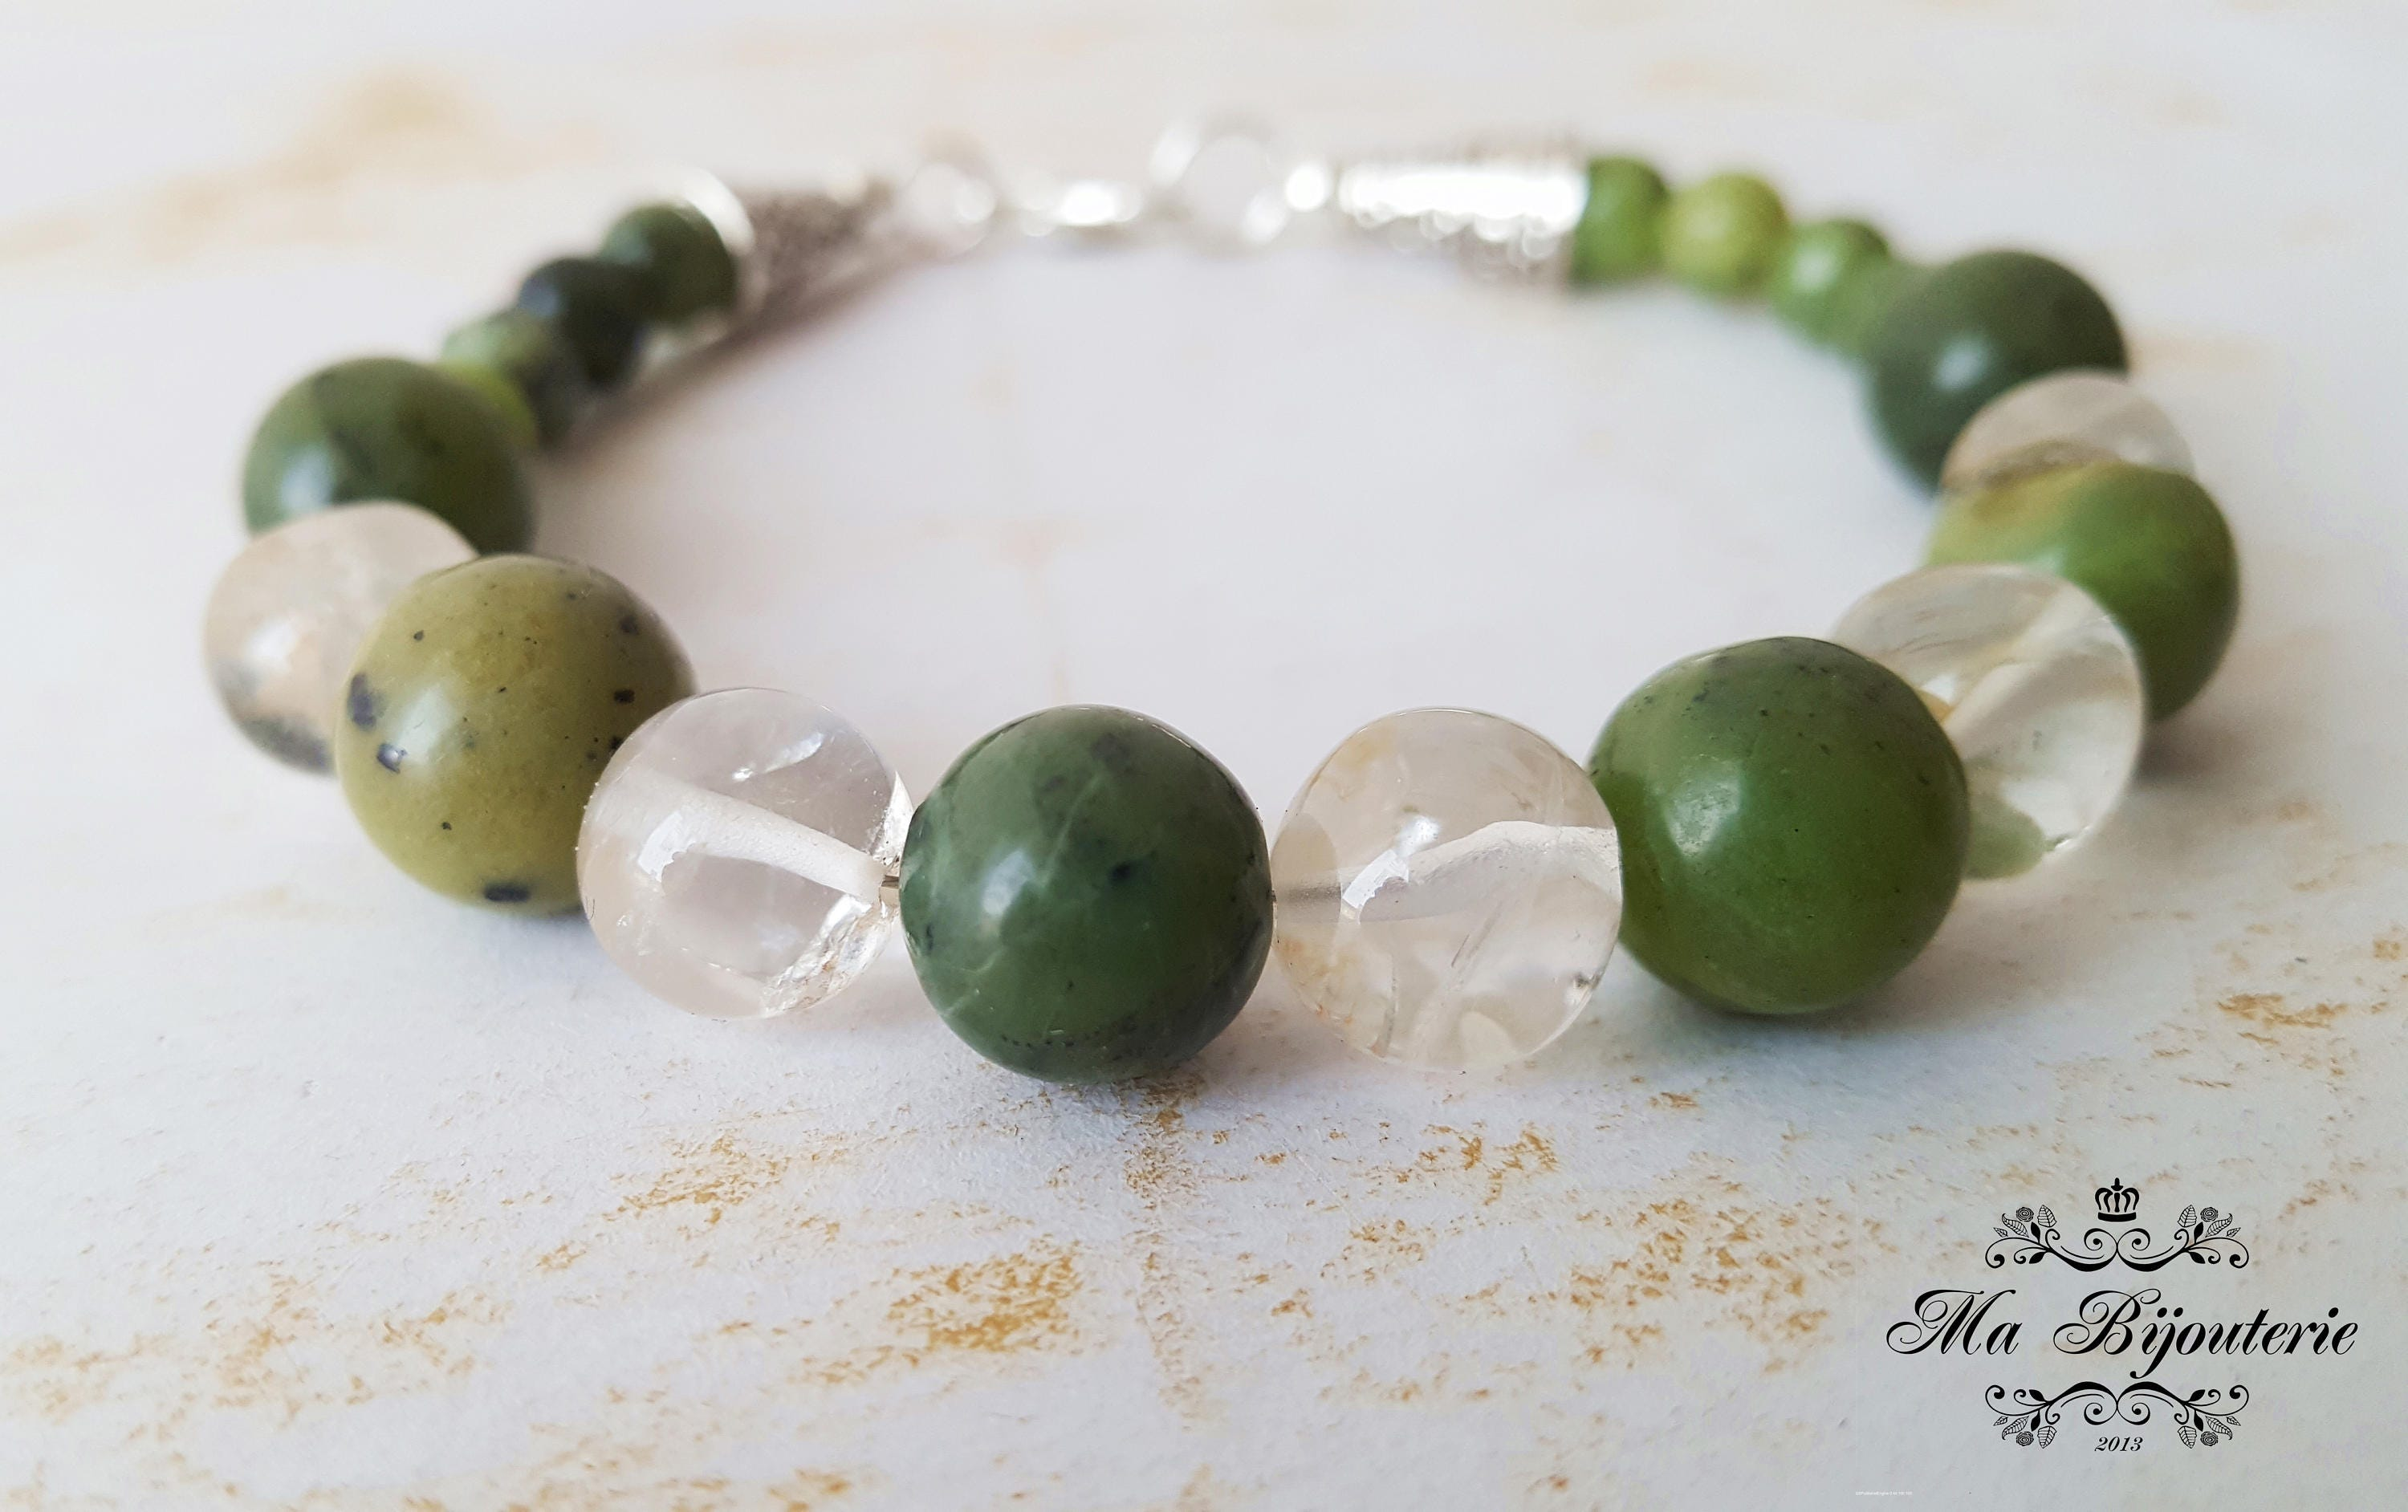 ornamental s jewelry on eye bracelet earrings from shop dark online green handmade livemaster cat natural stones stone item